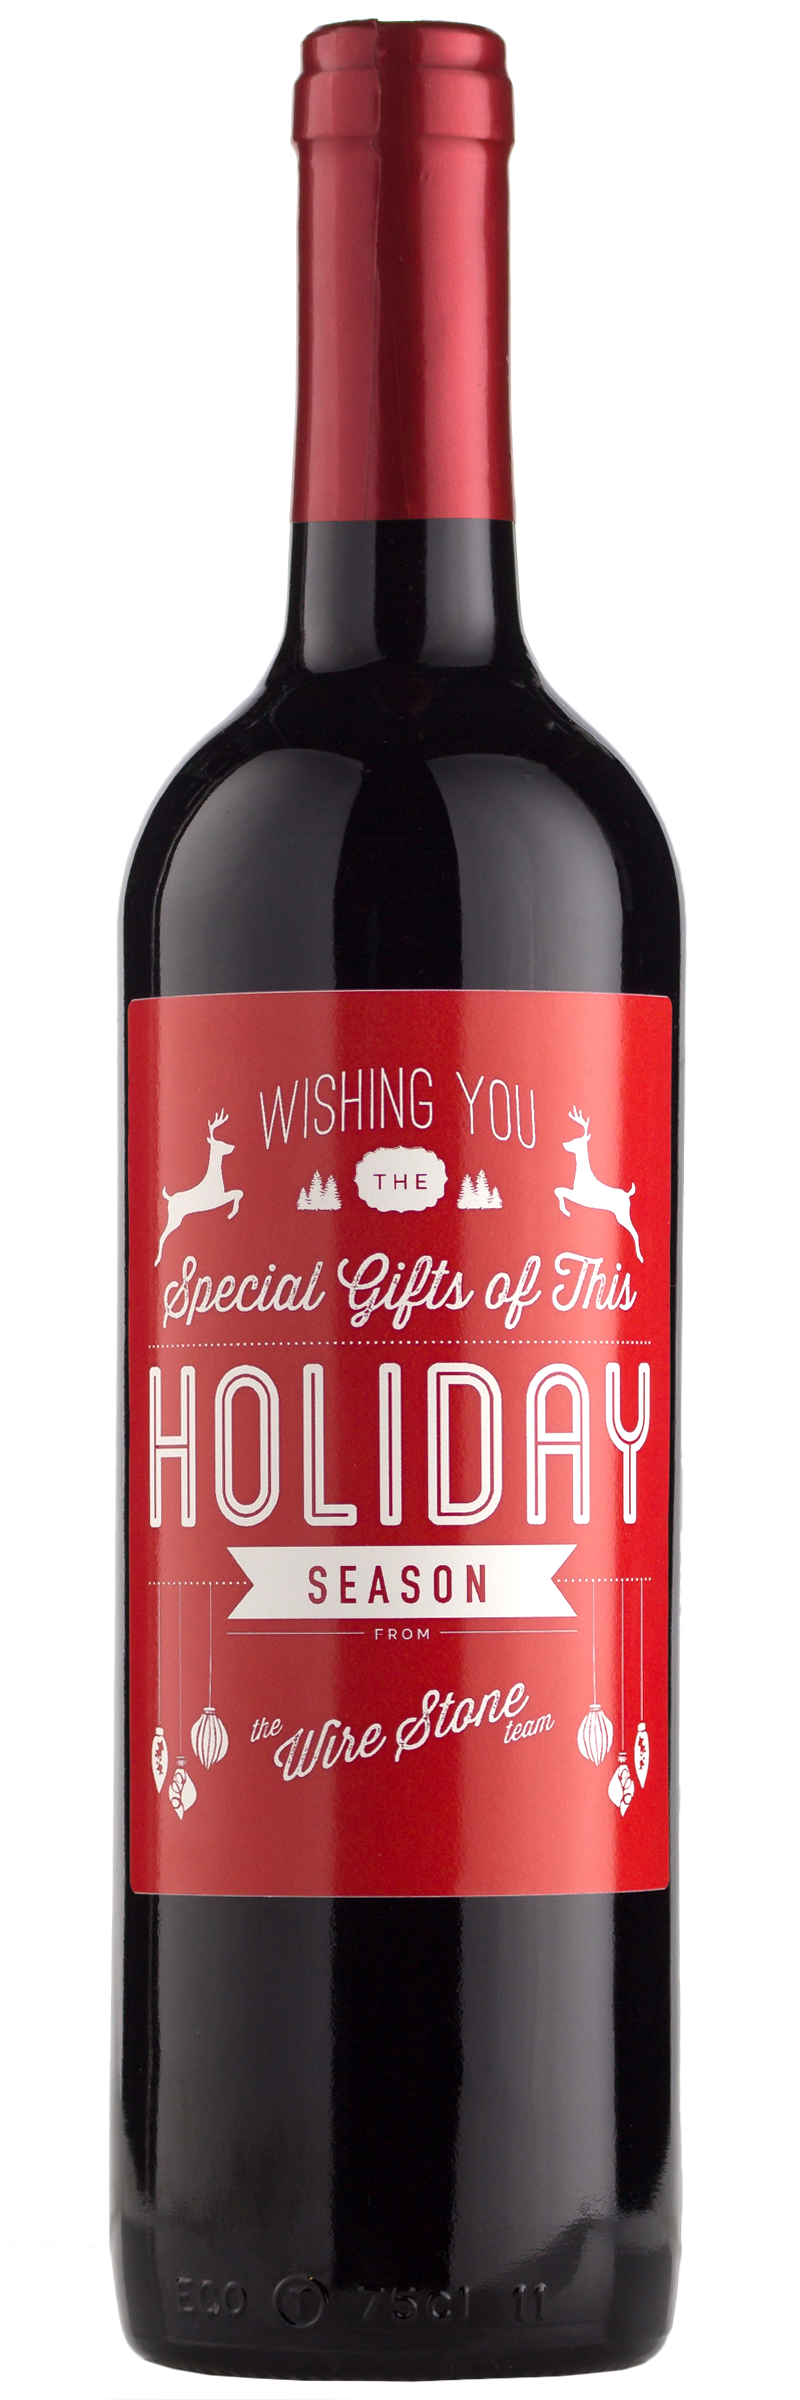 holiday-label-02